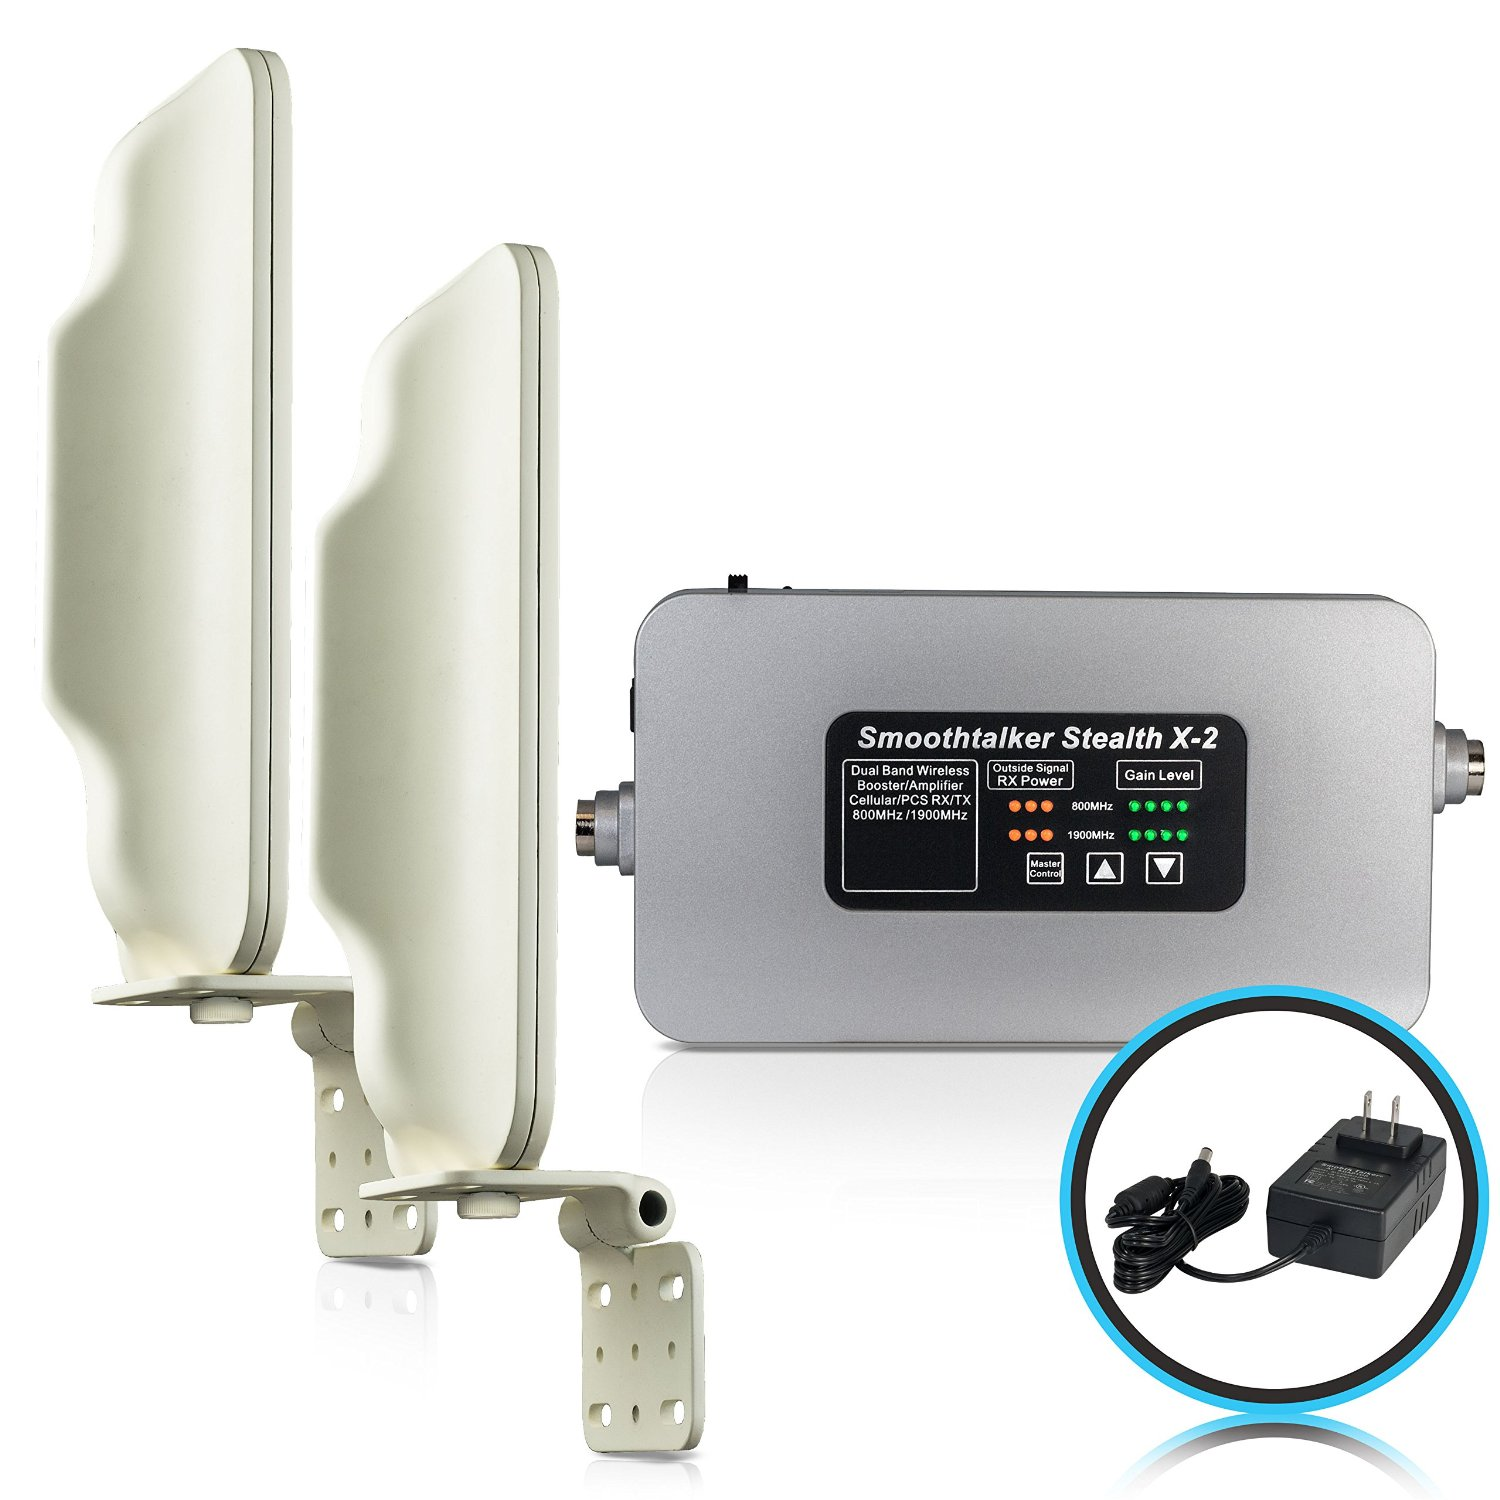 Best Cell Phone Signal Boosters for Business Users - Smoothtalker Stealth X2